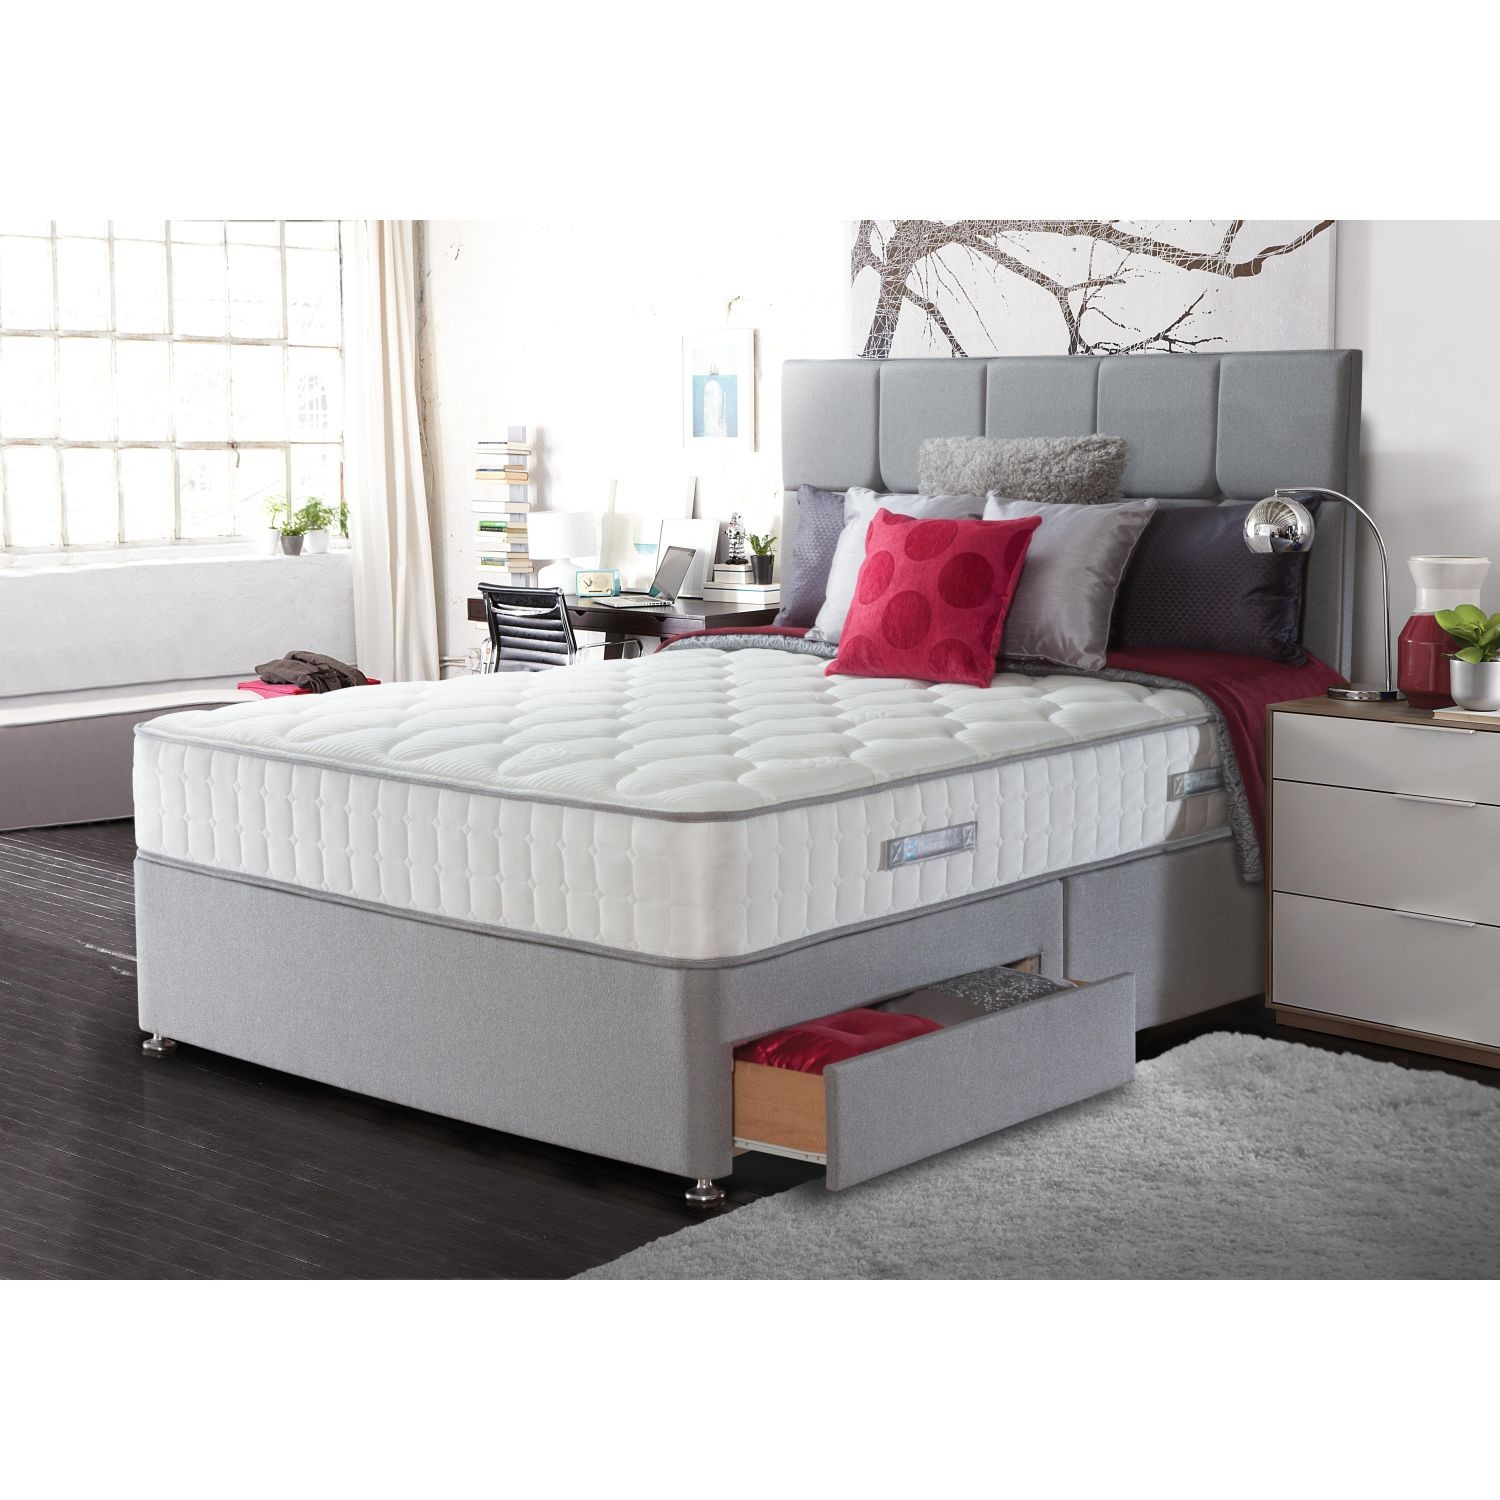 Sealy chloe four drawer divan set double for Double divan bed with four drawers